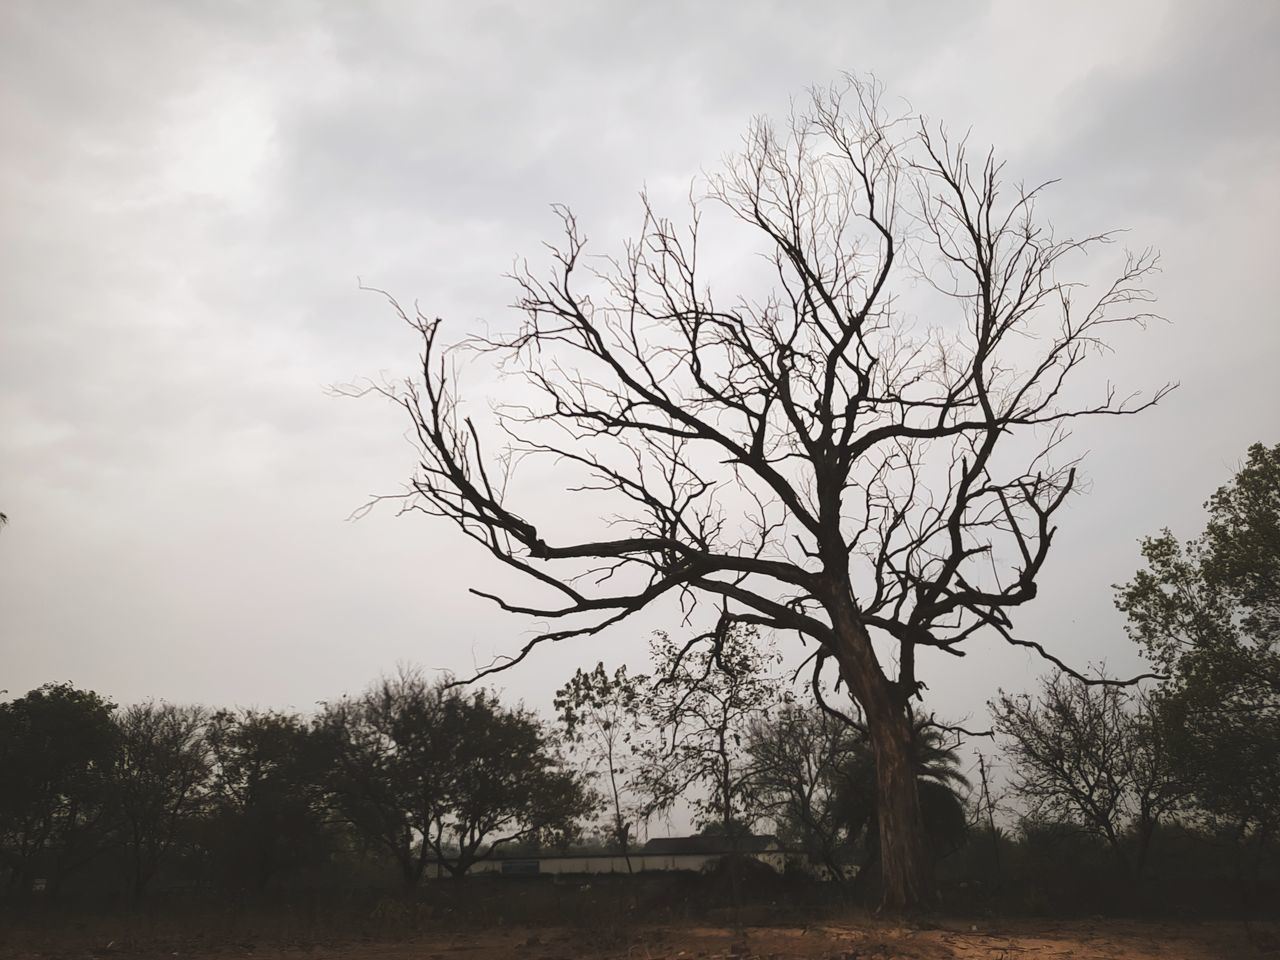 VIEW OF BARE TREES ON FIELD AGAINST SKY